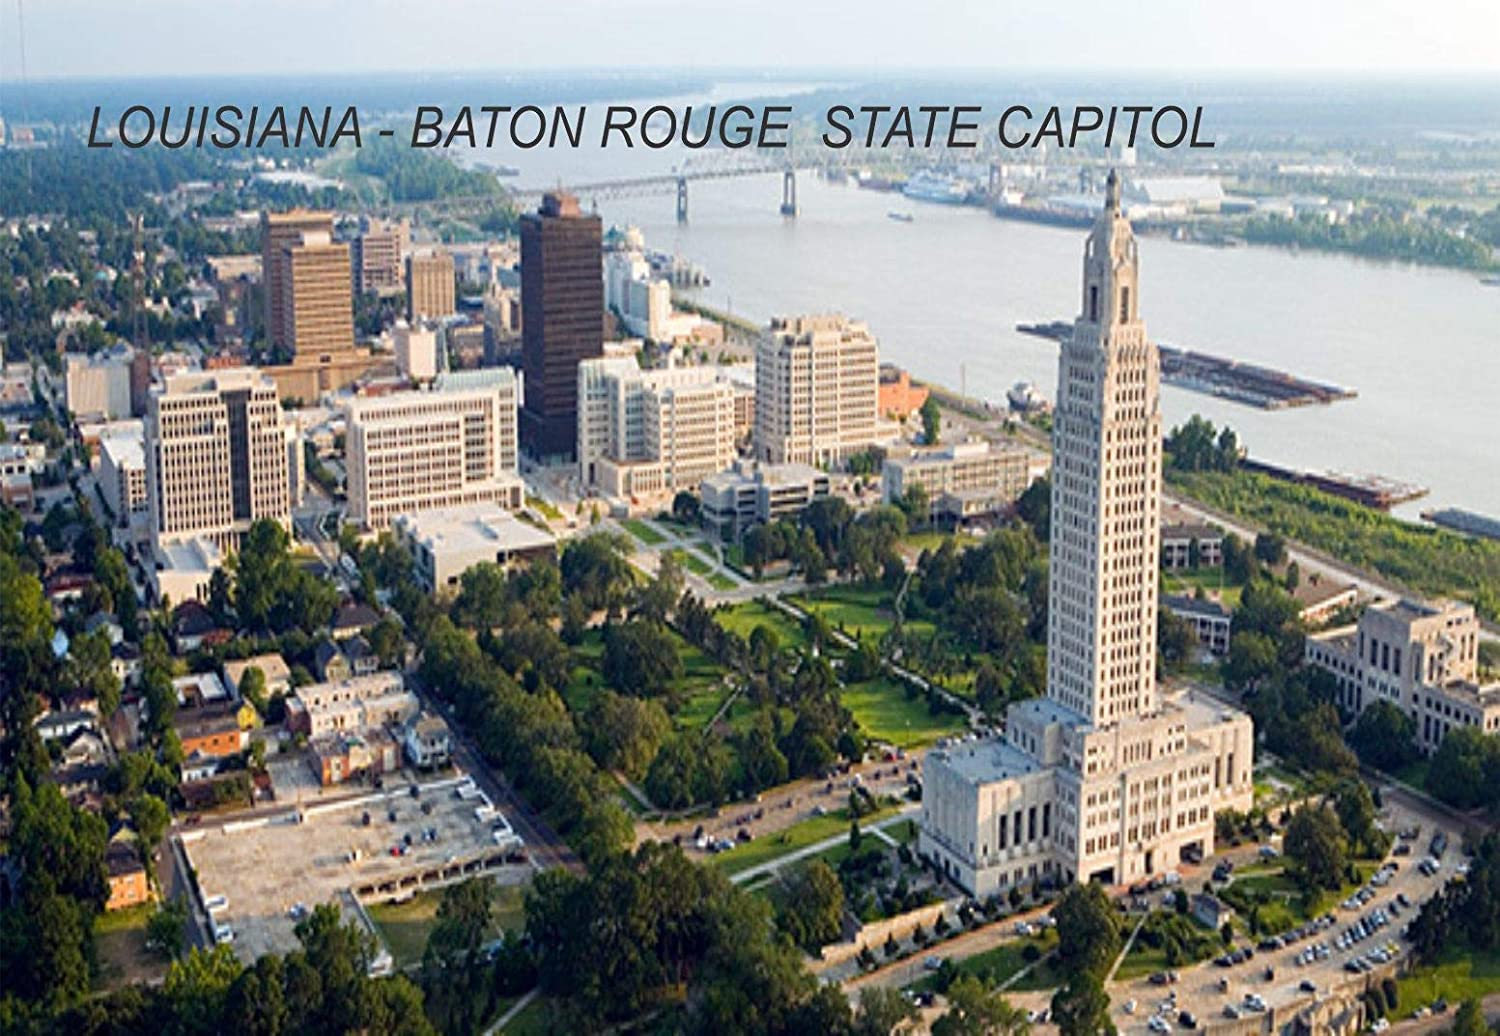 Louisiana USA United States Fridge Refrigerator Magnets (1 Piece, Style: Baton Rouge State Capitol #LOU3)